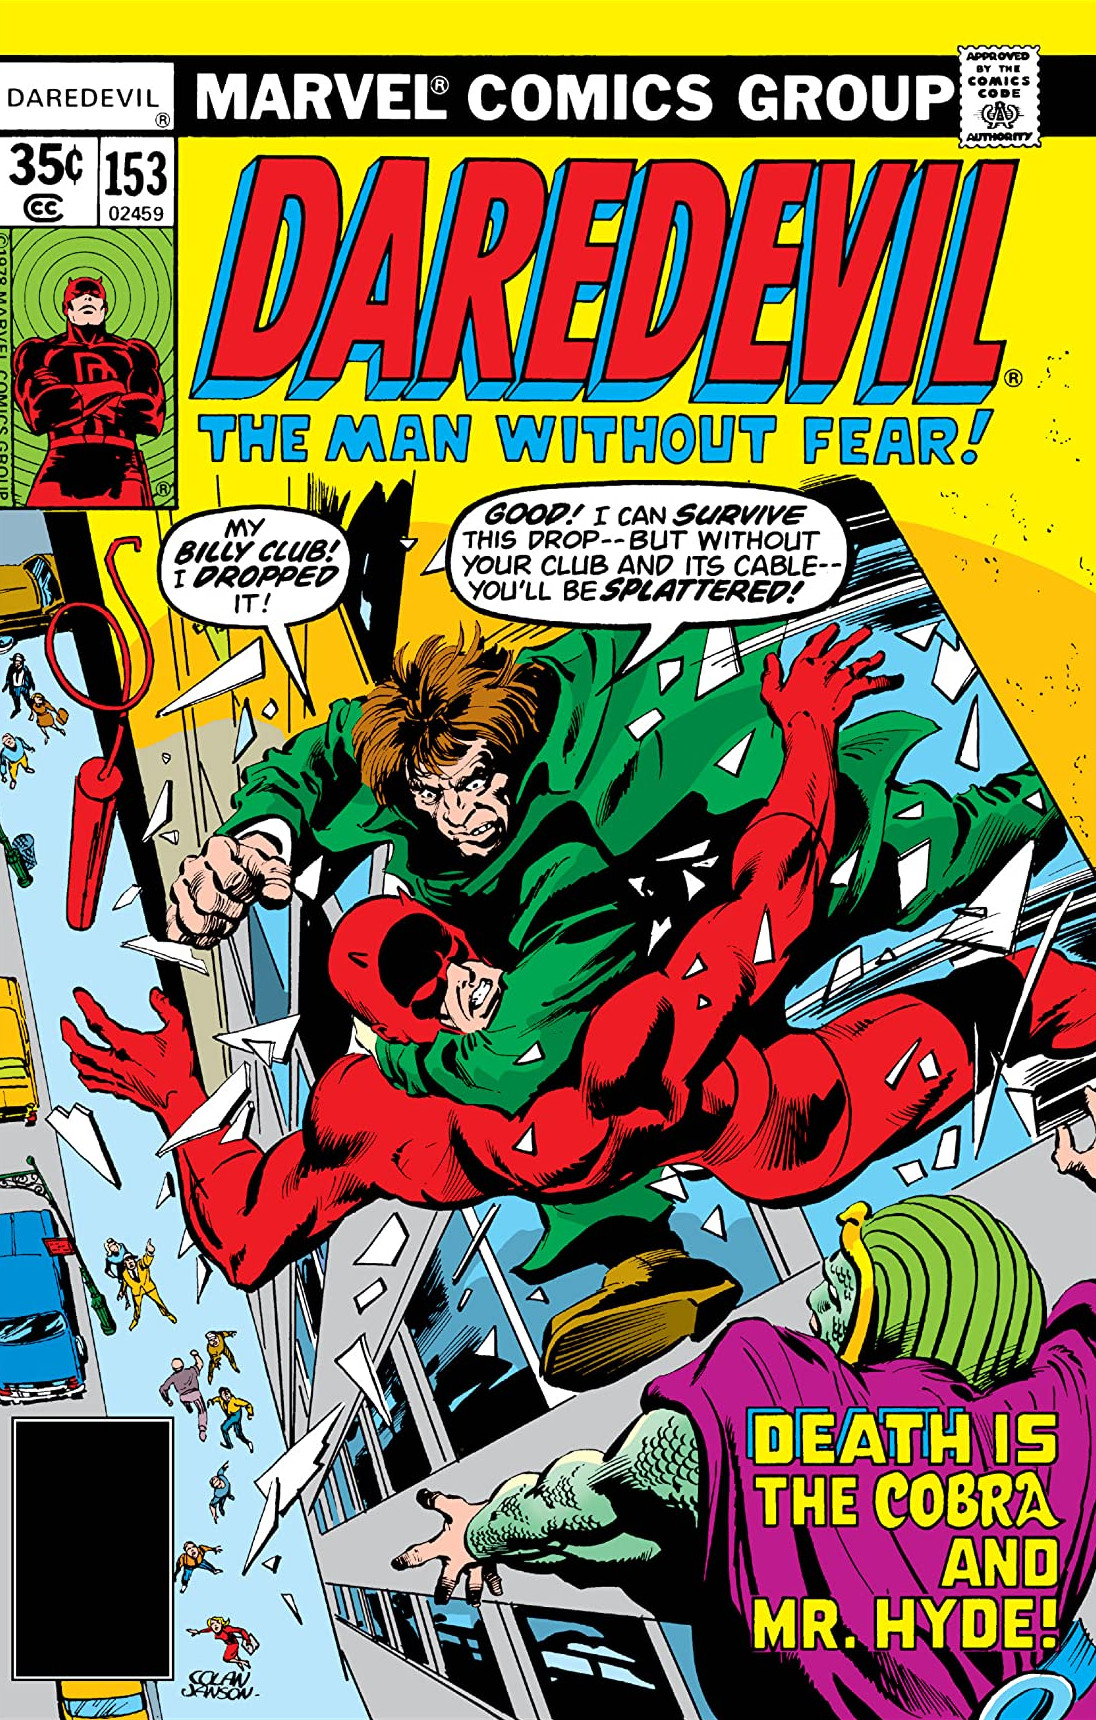 Daredevil Vol 1 153